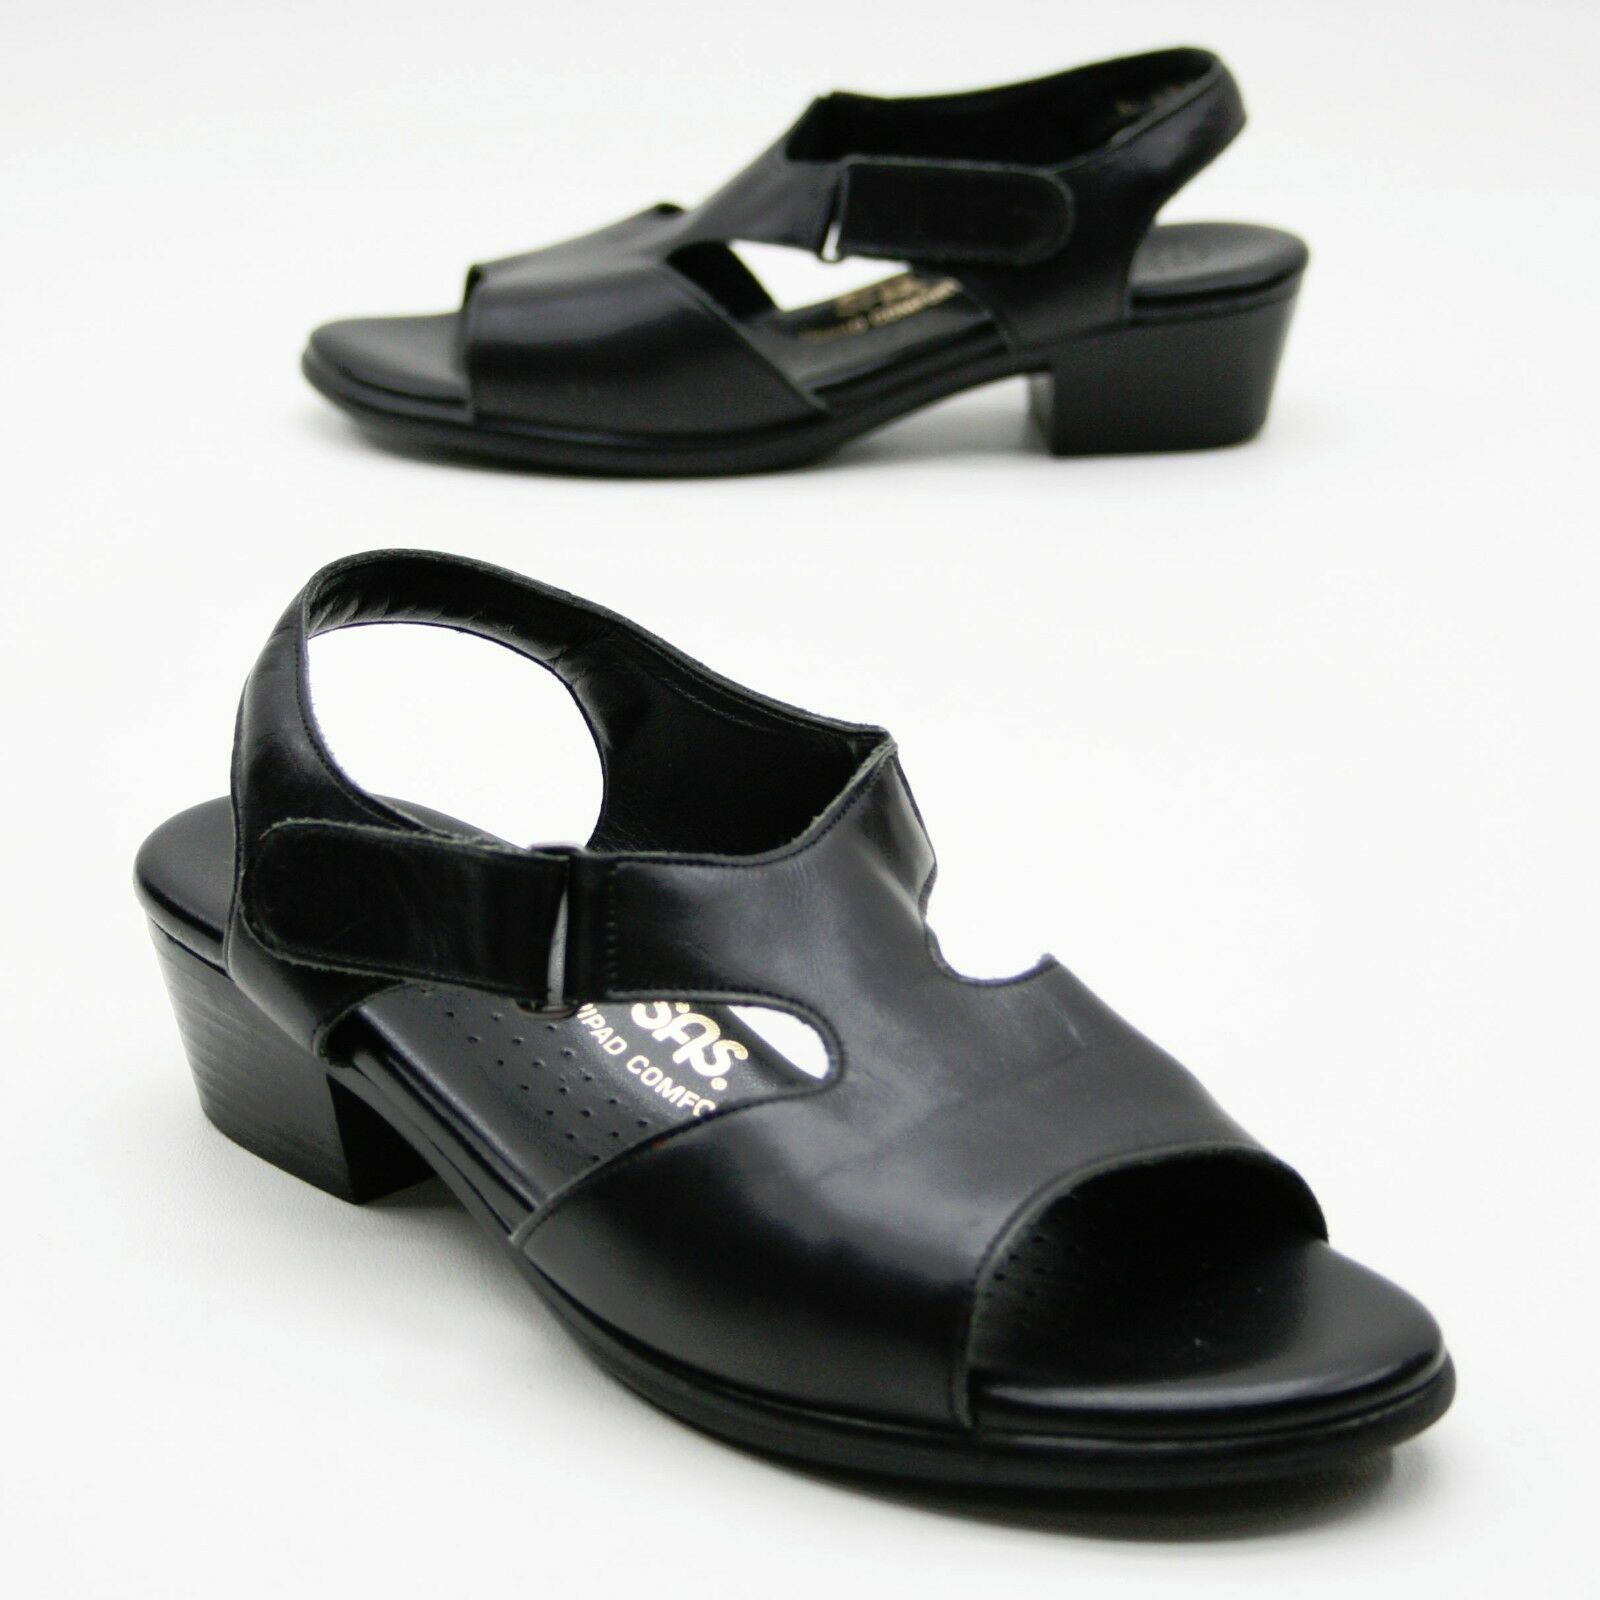 SAS Suntimer Toes Ladies 7 M Black Leather Sandals Open Toes Suntimer Tripad Comfort Strappy aeb5e4